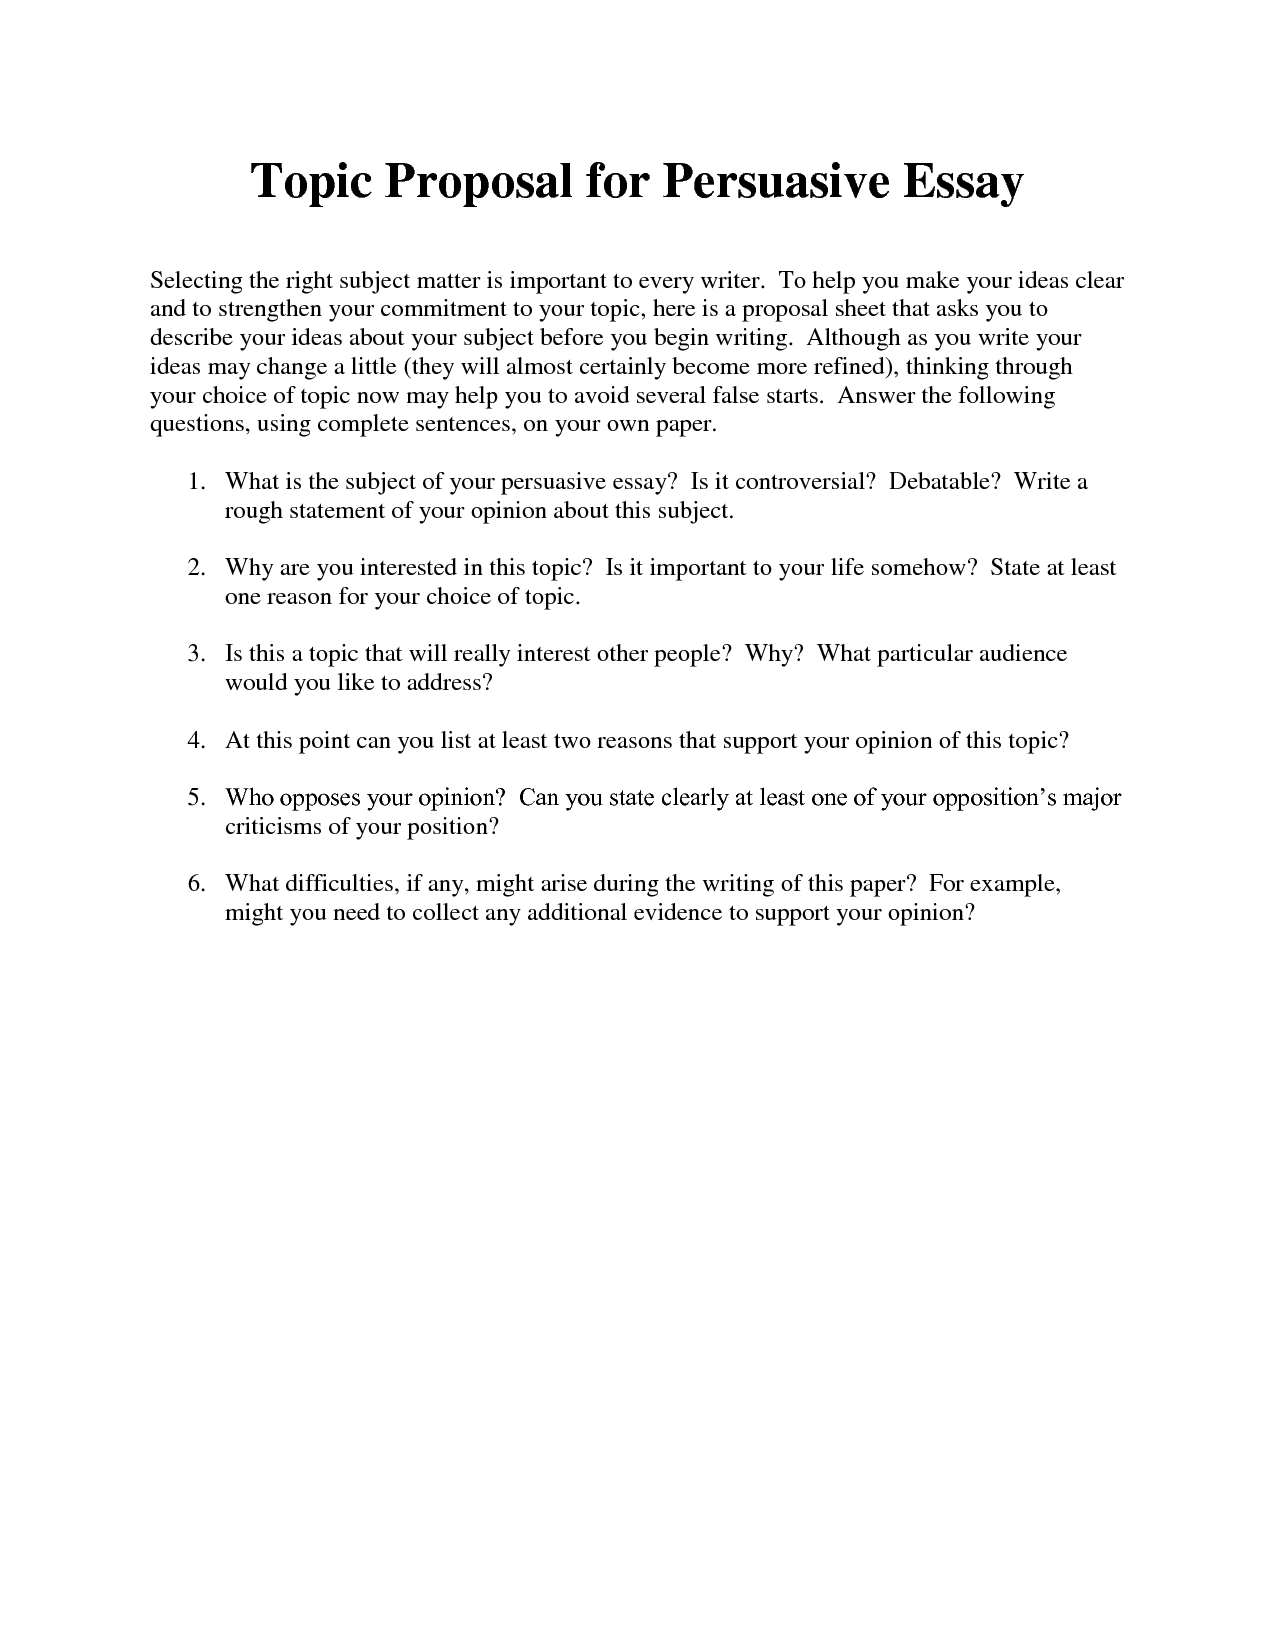 006 Essay Example Controversial Persuasive Topics Evaluation Argument Proposal Topic Ideas Best Images Of Argumentative Research 6 Rogerian Causal Sentence Good College Awesome Speech 2018 2017 In The Philippines Full